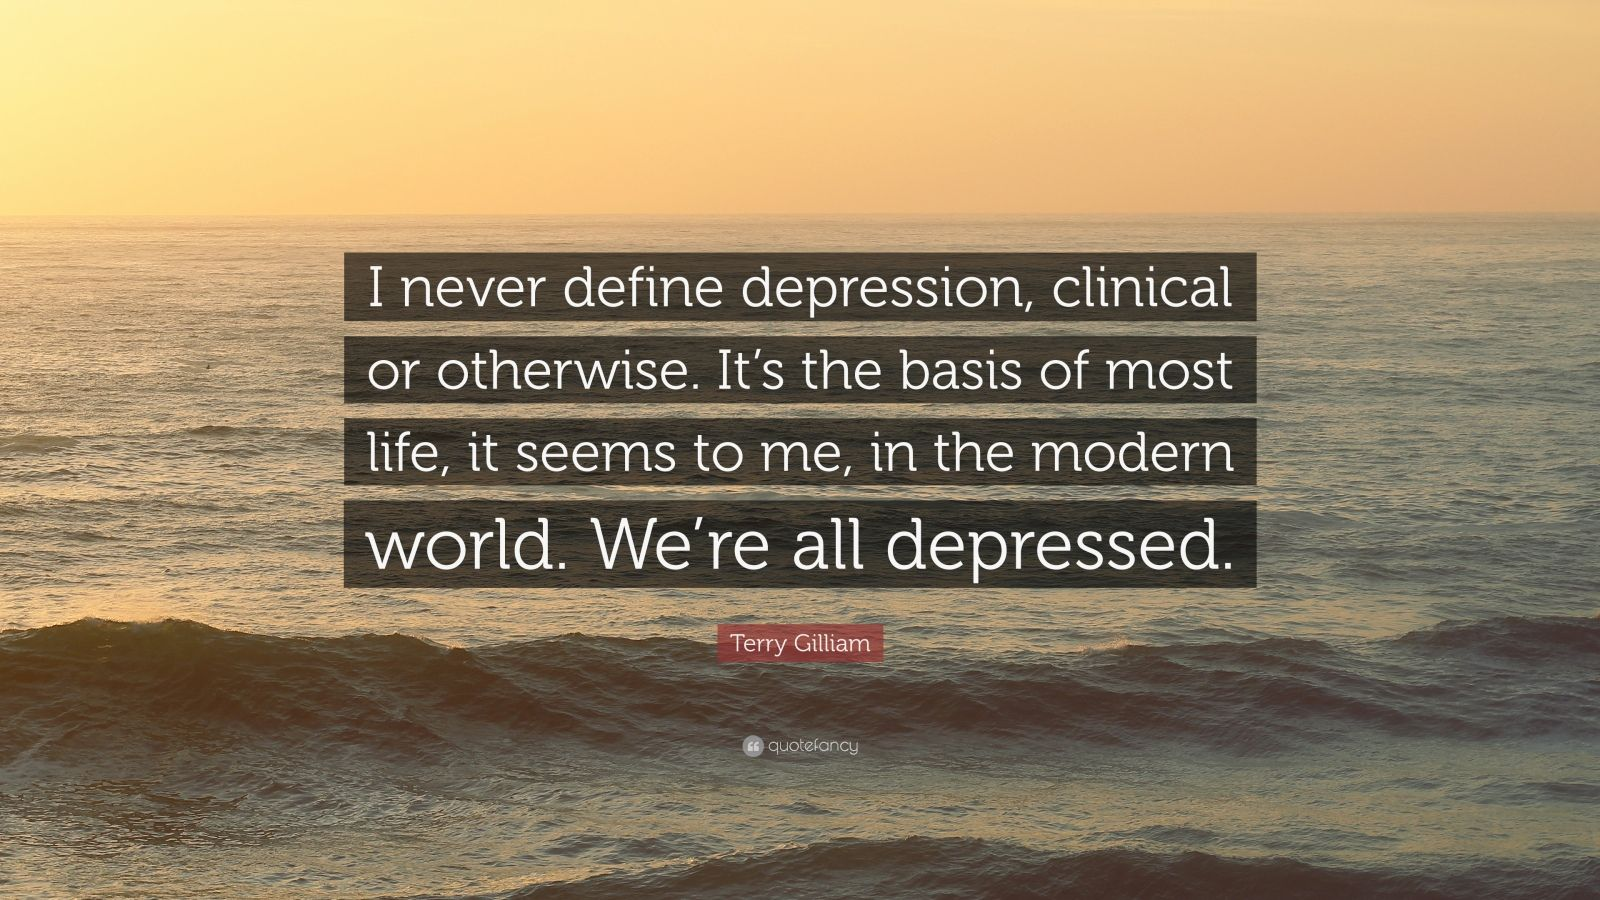 how we define depression Depression: depression, in psychology, a mood or emotional state marked by feelings of low self-worth or guilt and a reduced ability to enjoy life depression differs from simple grief or mourning and can be classified into different types learn more about the causes, symptoms, types, and treatments for depression.